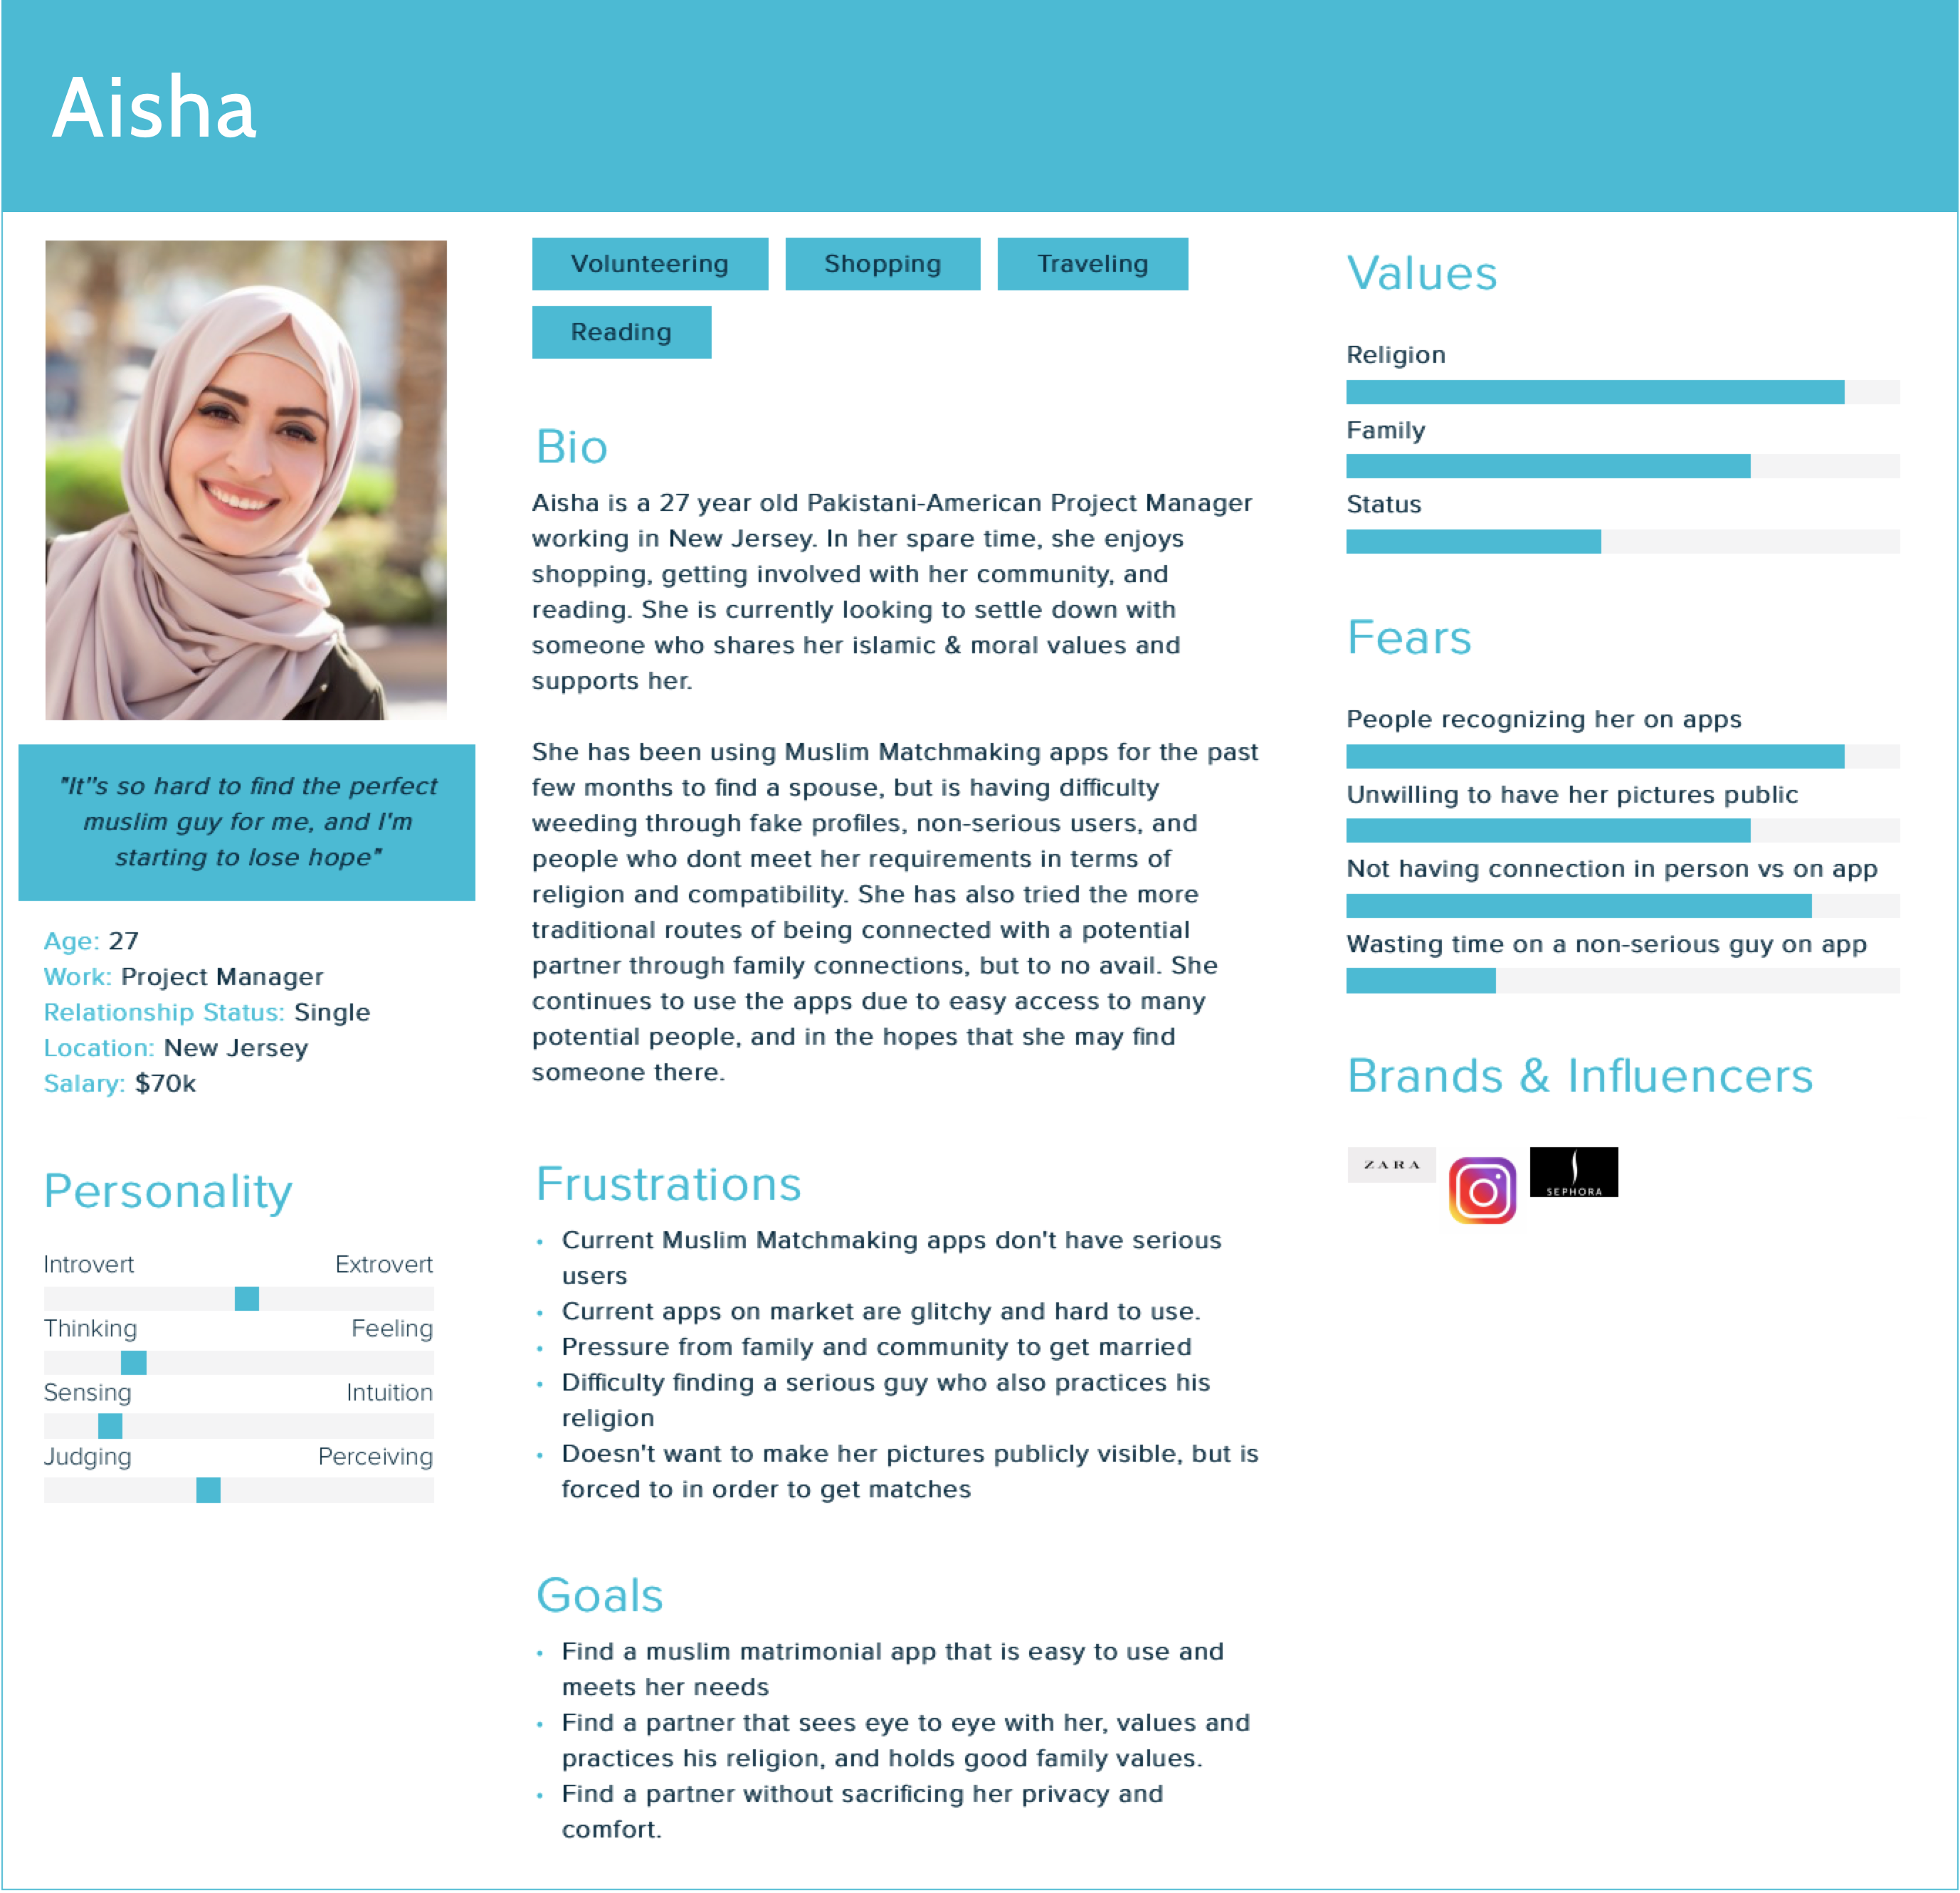 MuslimMatch-Matchmaking Mobile App for Muslim Singles